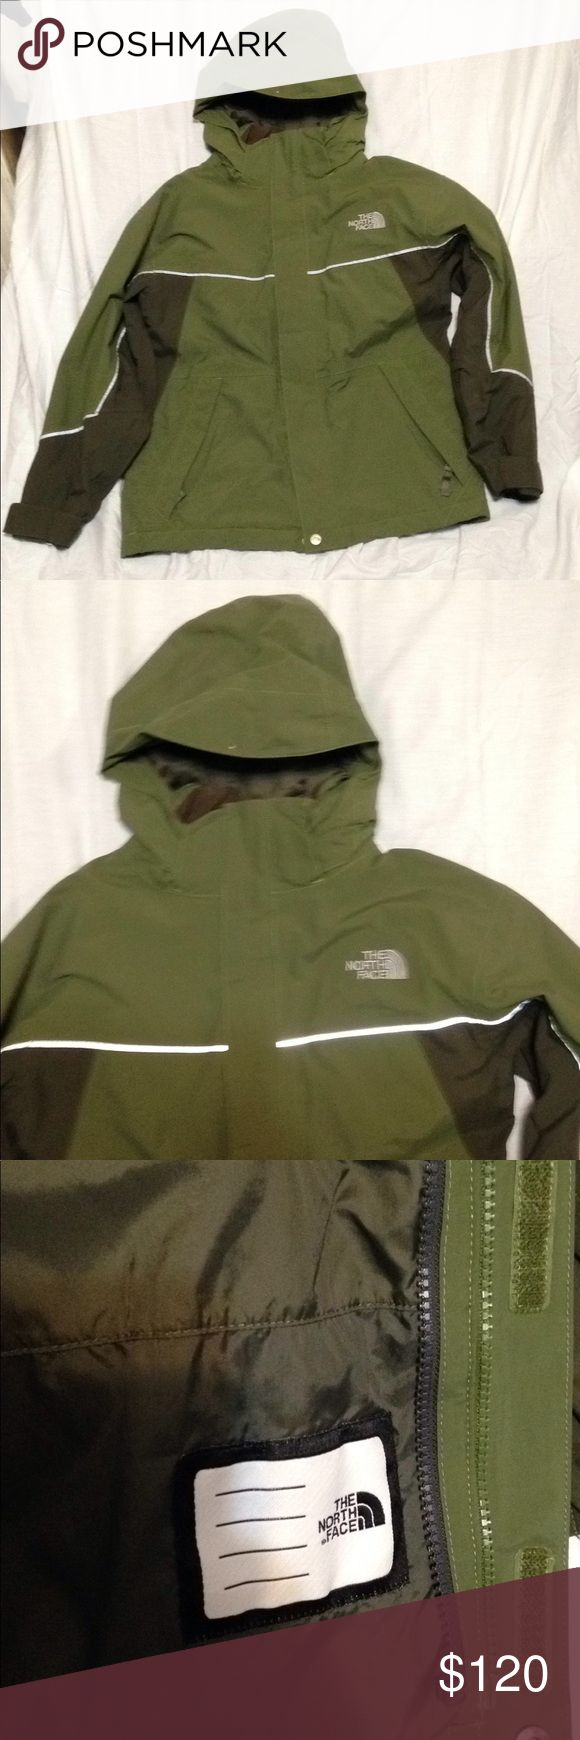 The north face jacket size medium boys coat Like new the north face boys hyvent size medium boys jacket with reflective stripe on front n sleeves for safety this jacket is waterproof wind proof n durable with a zippered removable hood it can roll up n go in or unzip n be removed I snapped a shot of the only defect I could find in back of jacket there's a slight blemish The North Face Jackets & Coats Raincoats